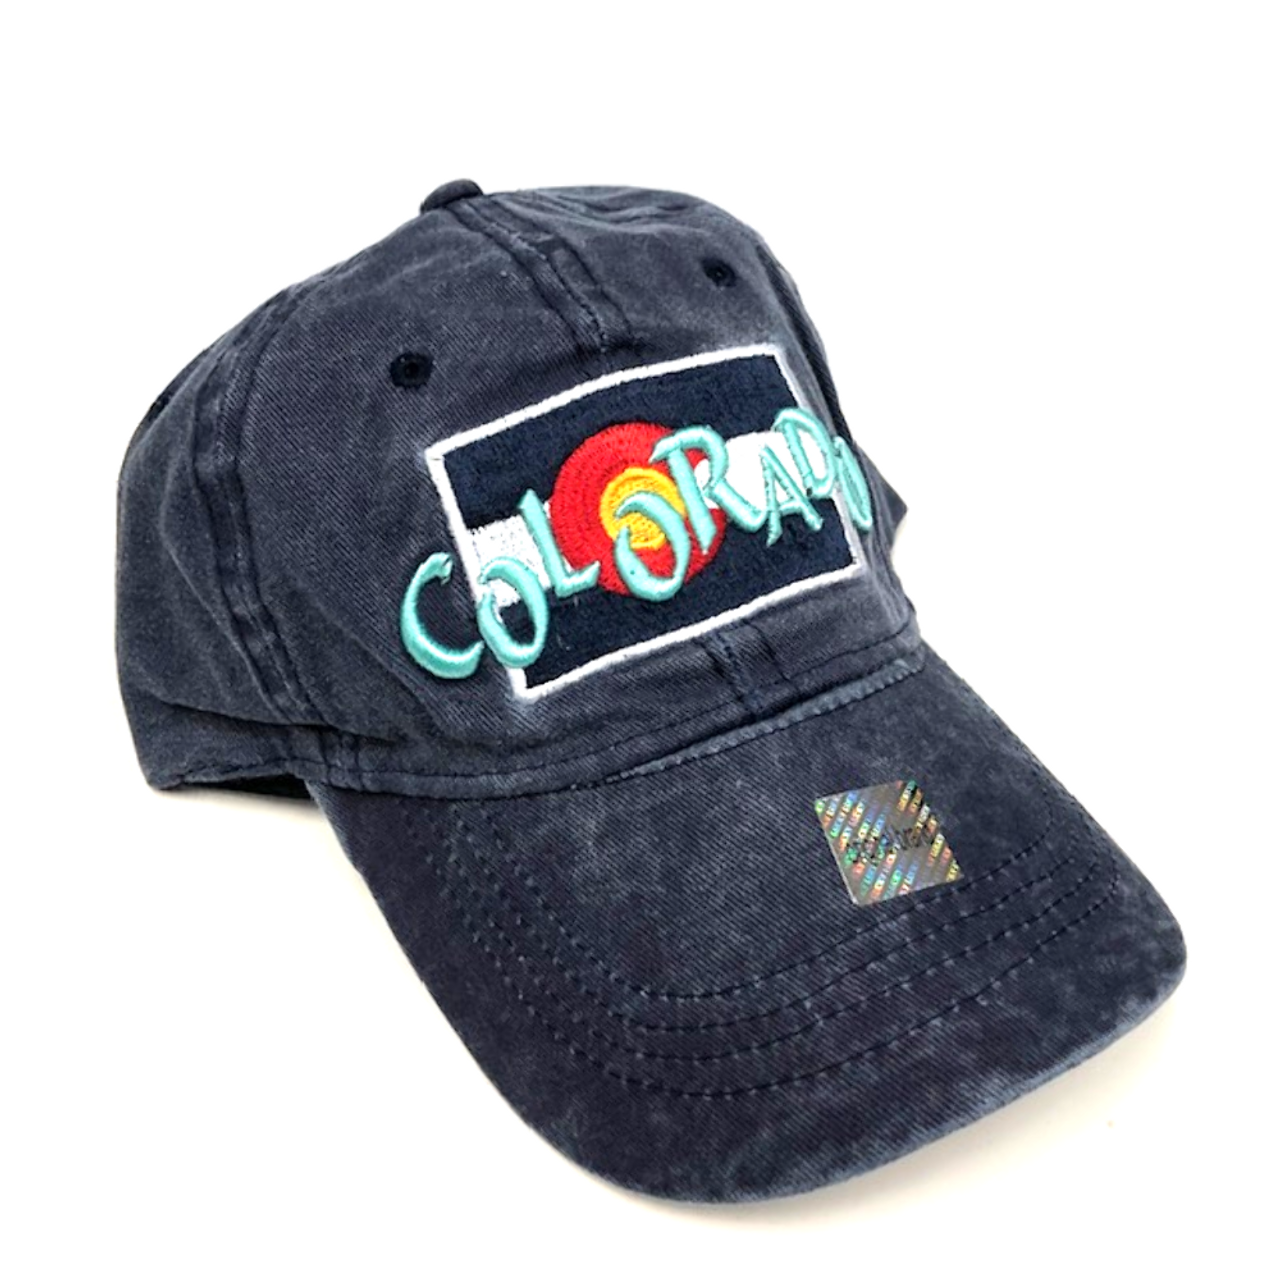 6ef1a2de7 Colorado Flag w/ Funky Colorado Adjustable Flat Brim Baseball Hat (BLUE)